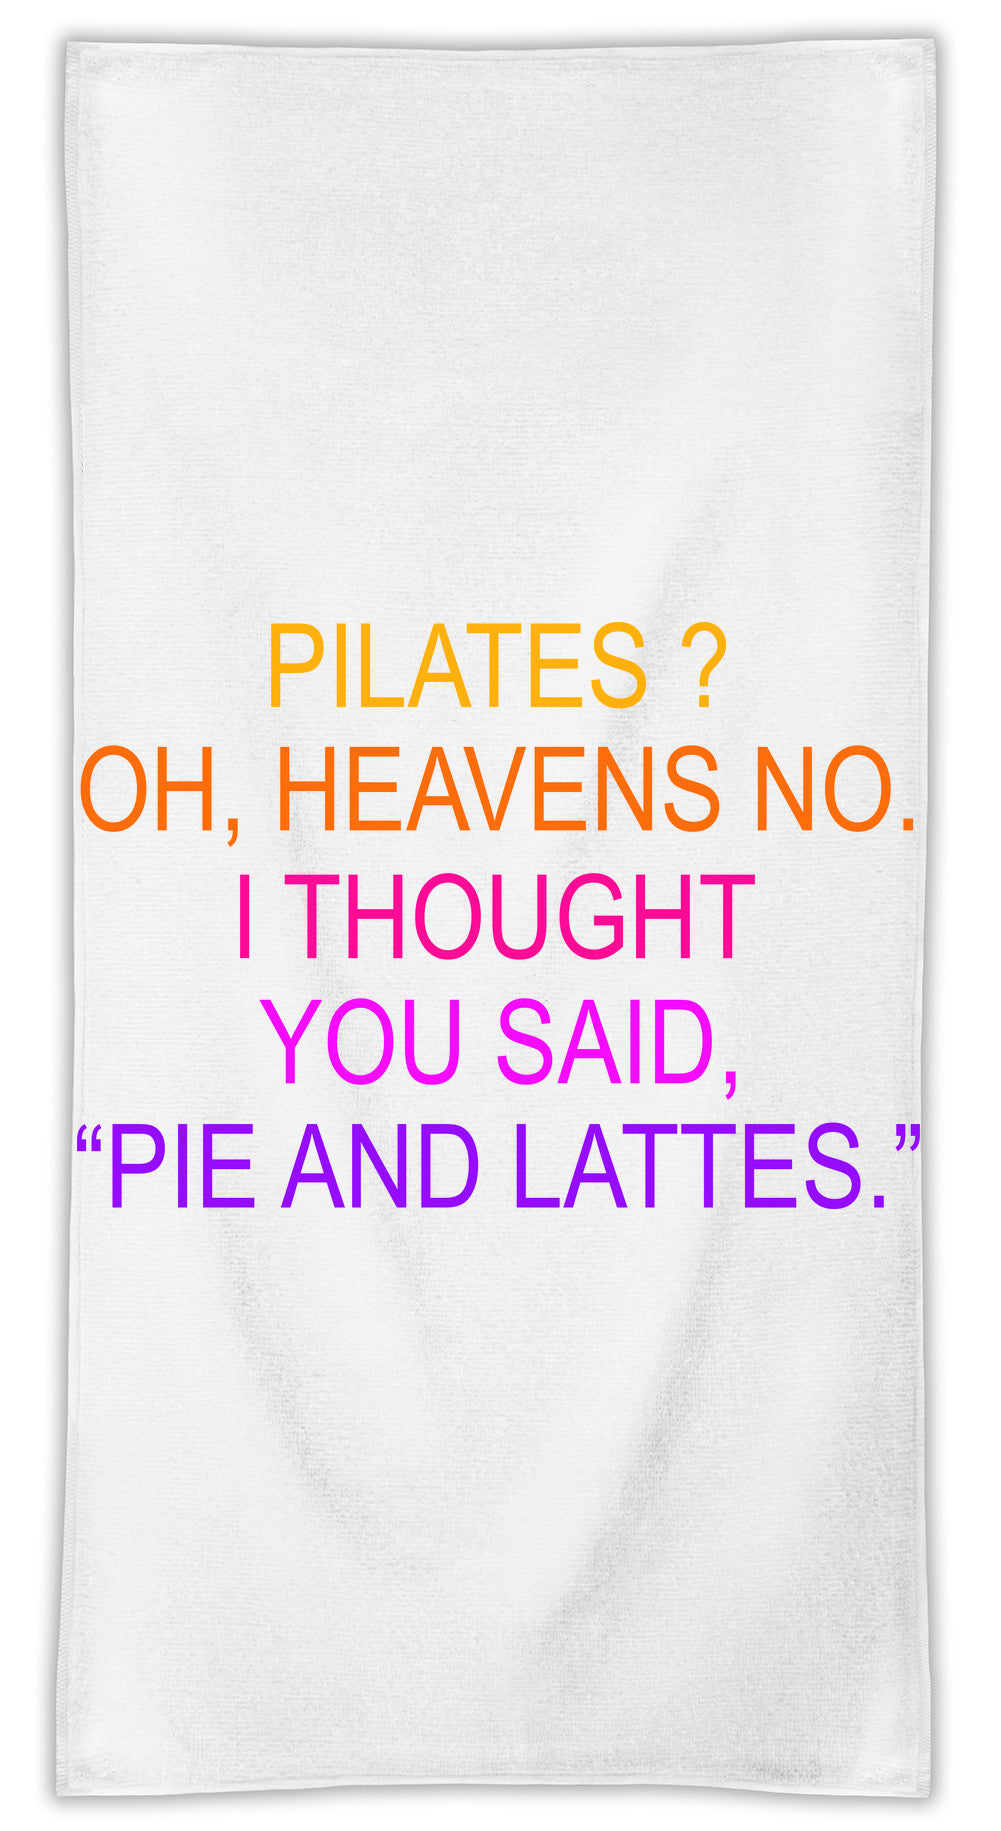 Pilates Oh Heavens No Funny Slogan  MicroFiber Towel W/ Custom Printed Designs| Eco-Friendly Material| Machine Washable| Available in 3 sizes| Premium Bathroom Supplies By Styleart